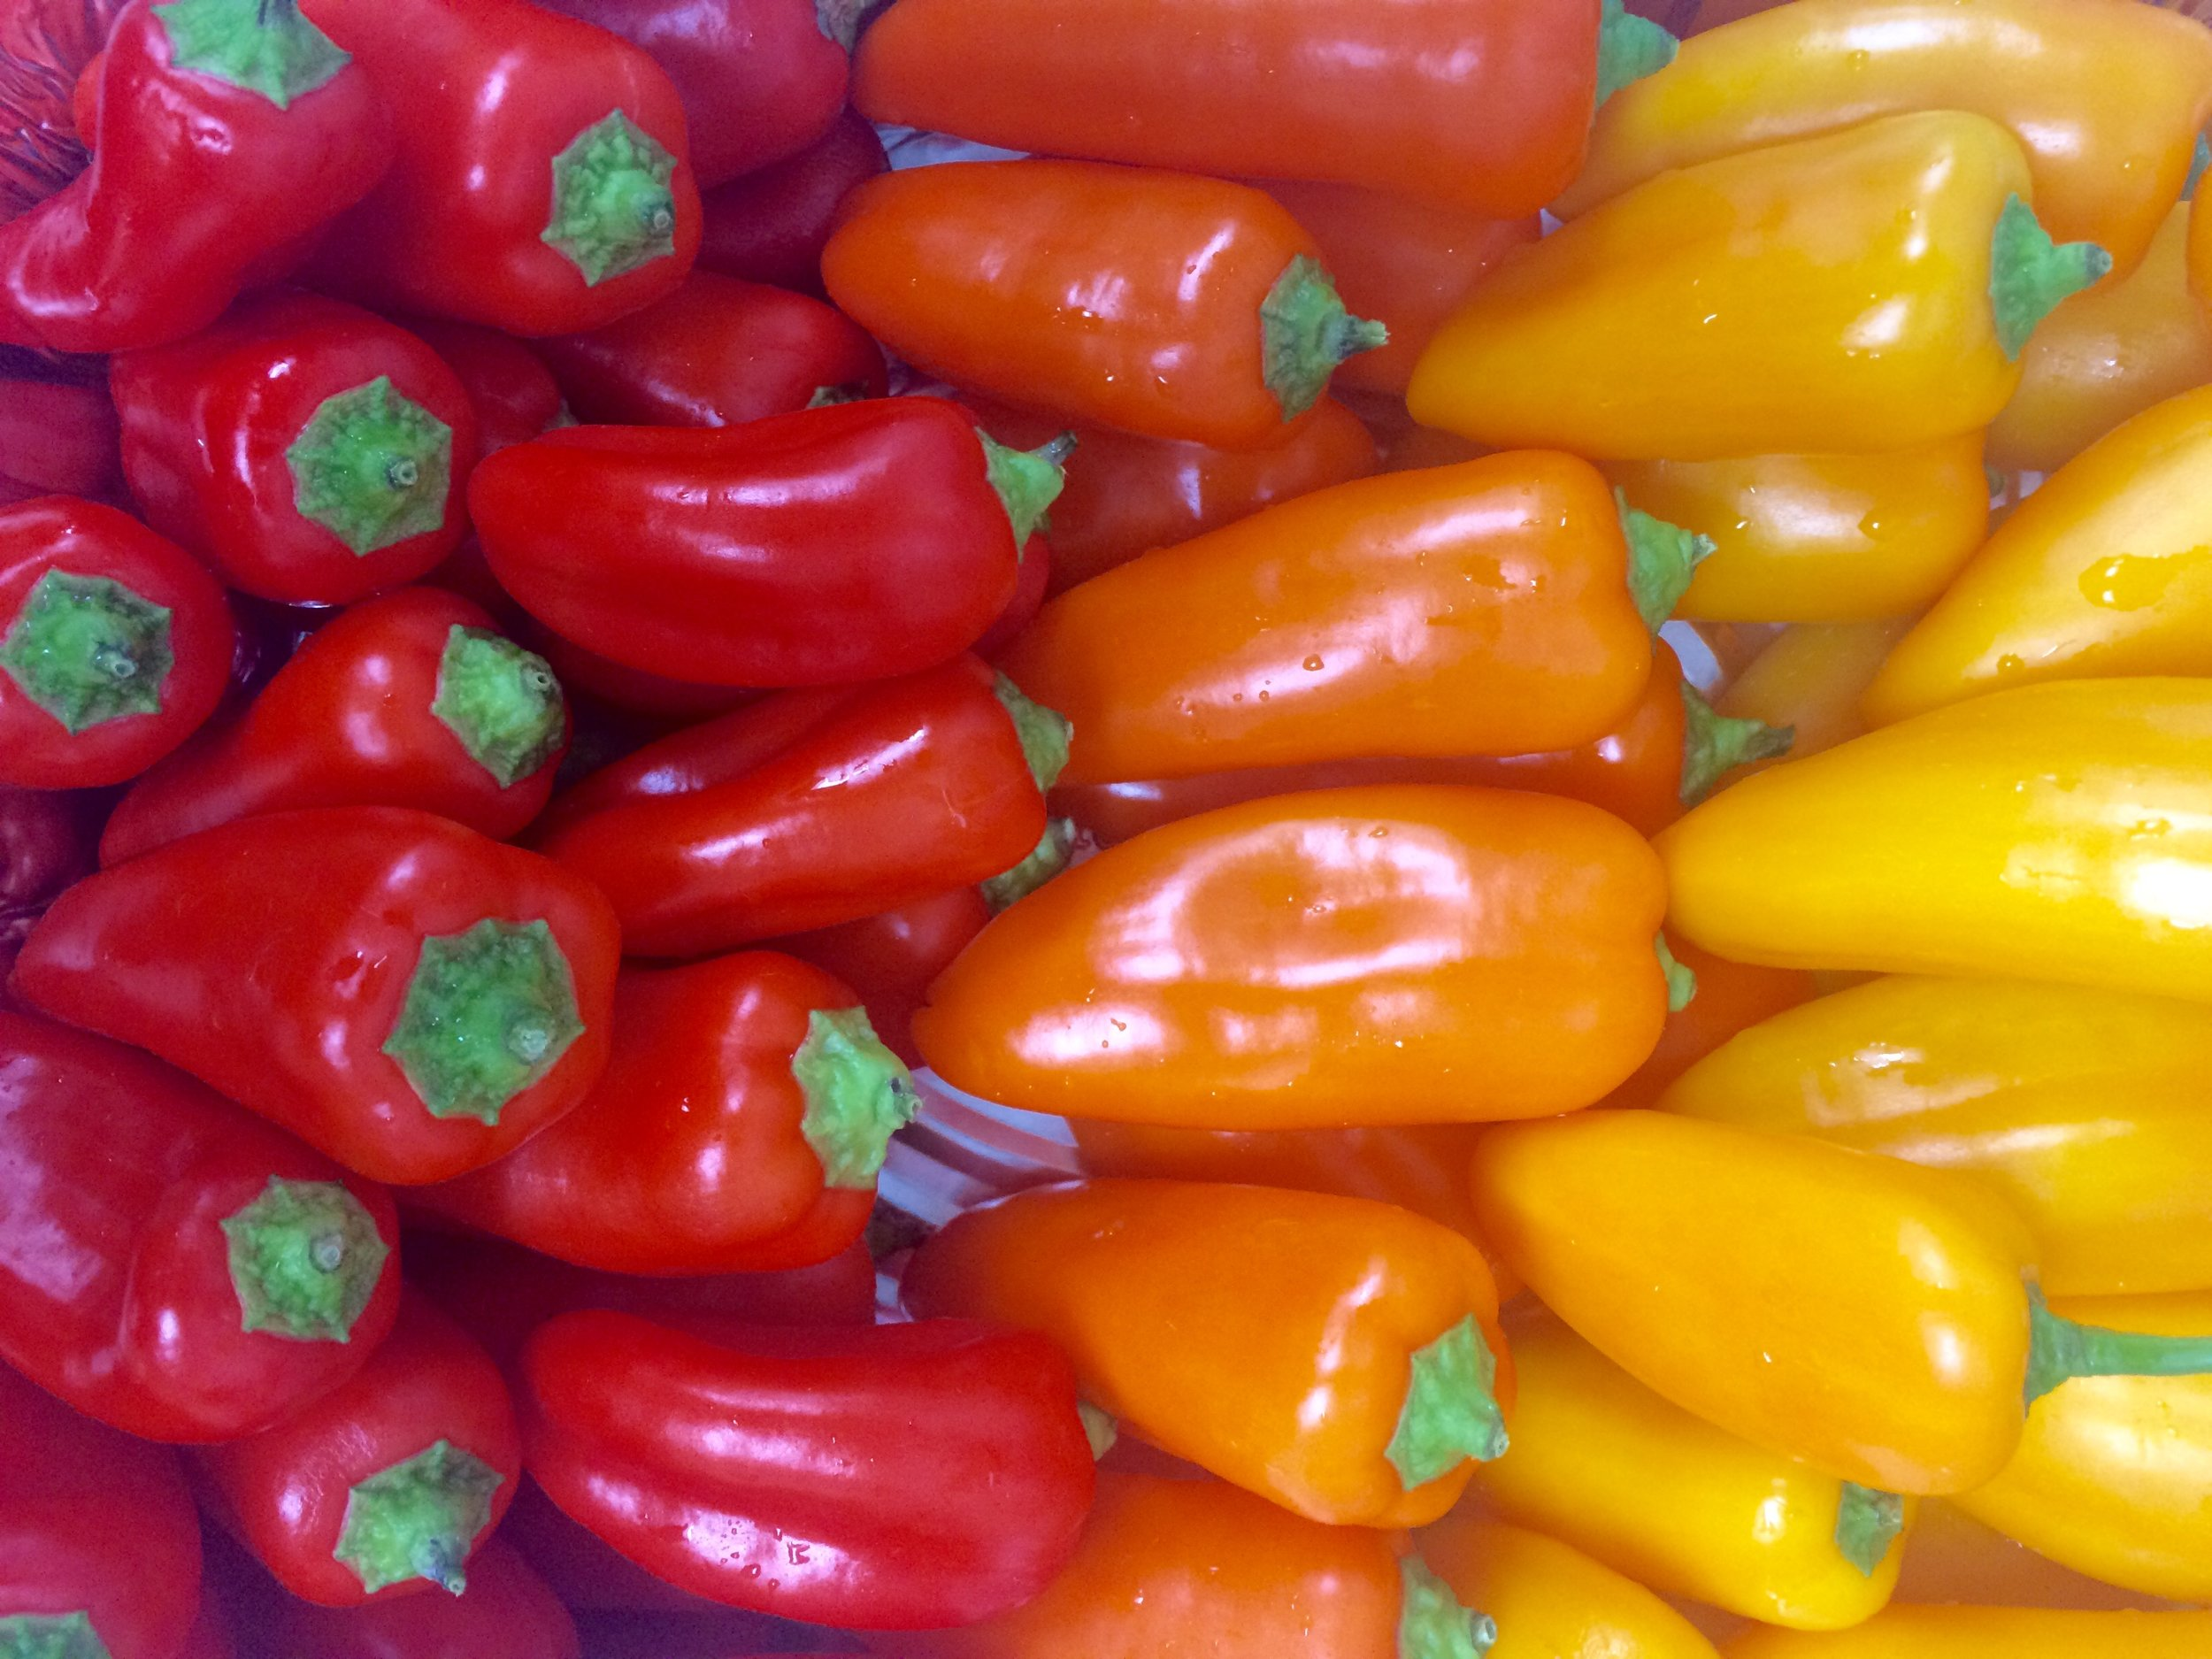 scenes from our healthy lunch - colorful mini peppers.